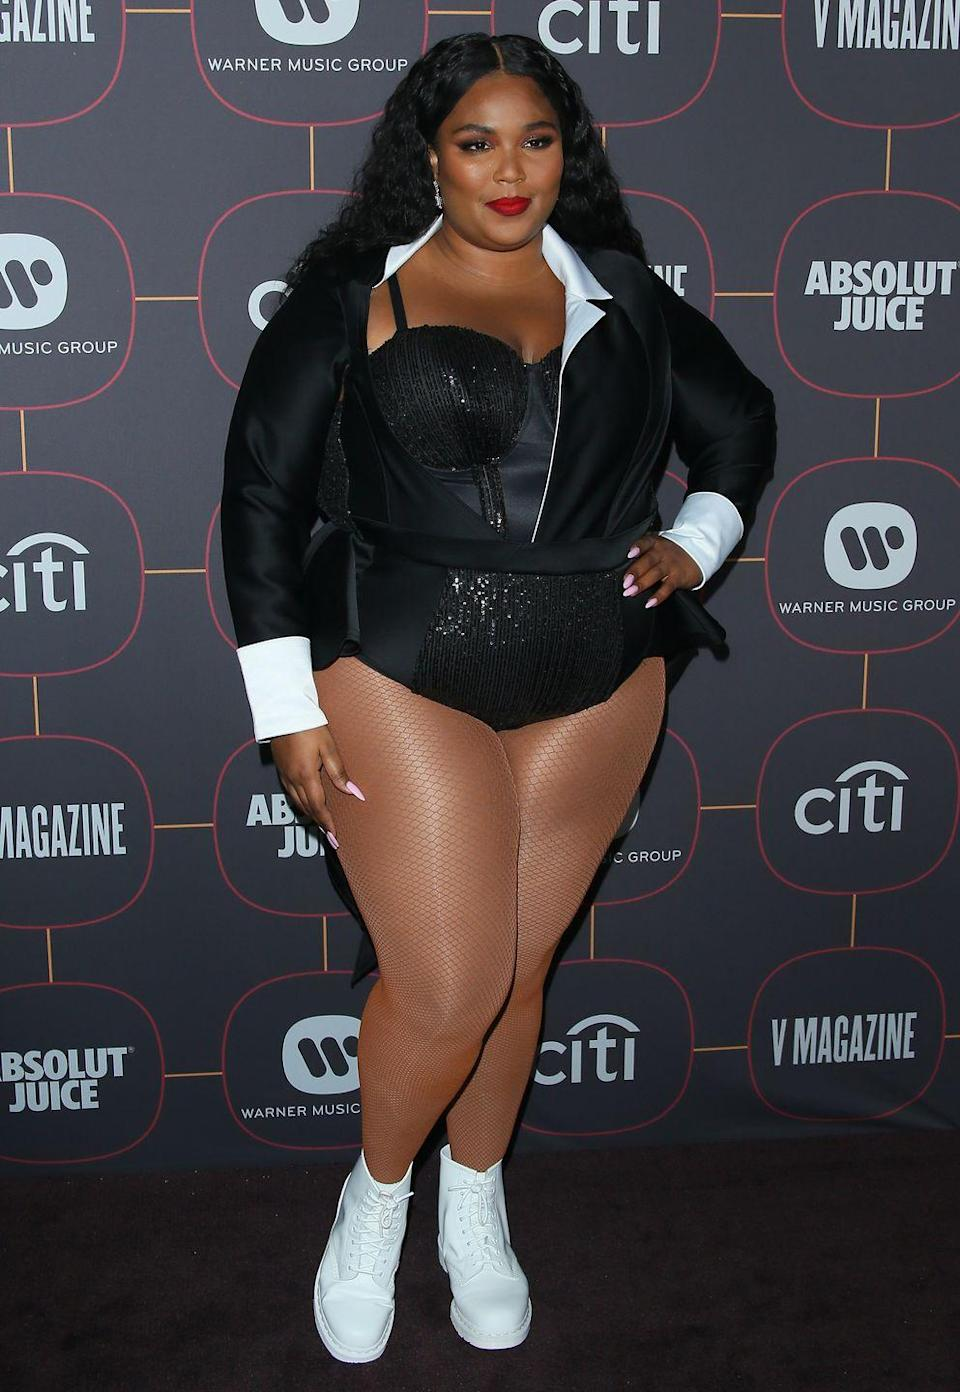 <p>Attending a pre-Grammy party in a leotard and sneakers. <br></p>